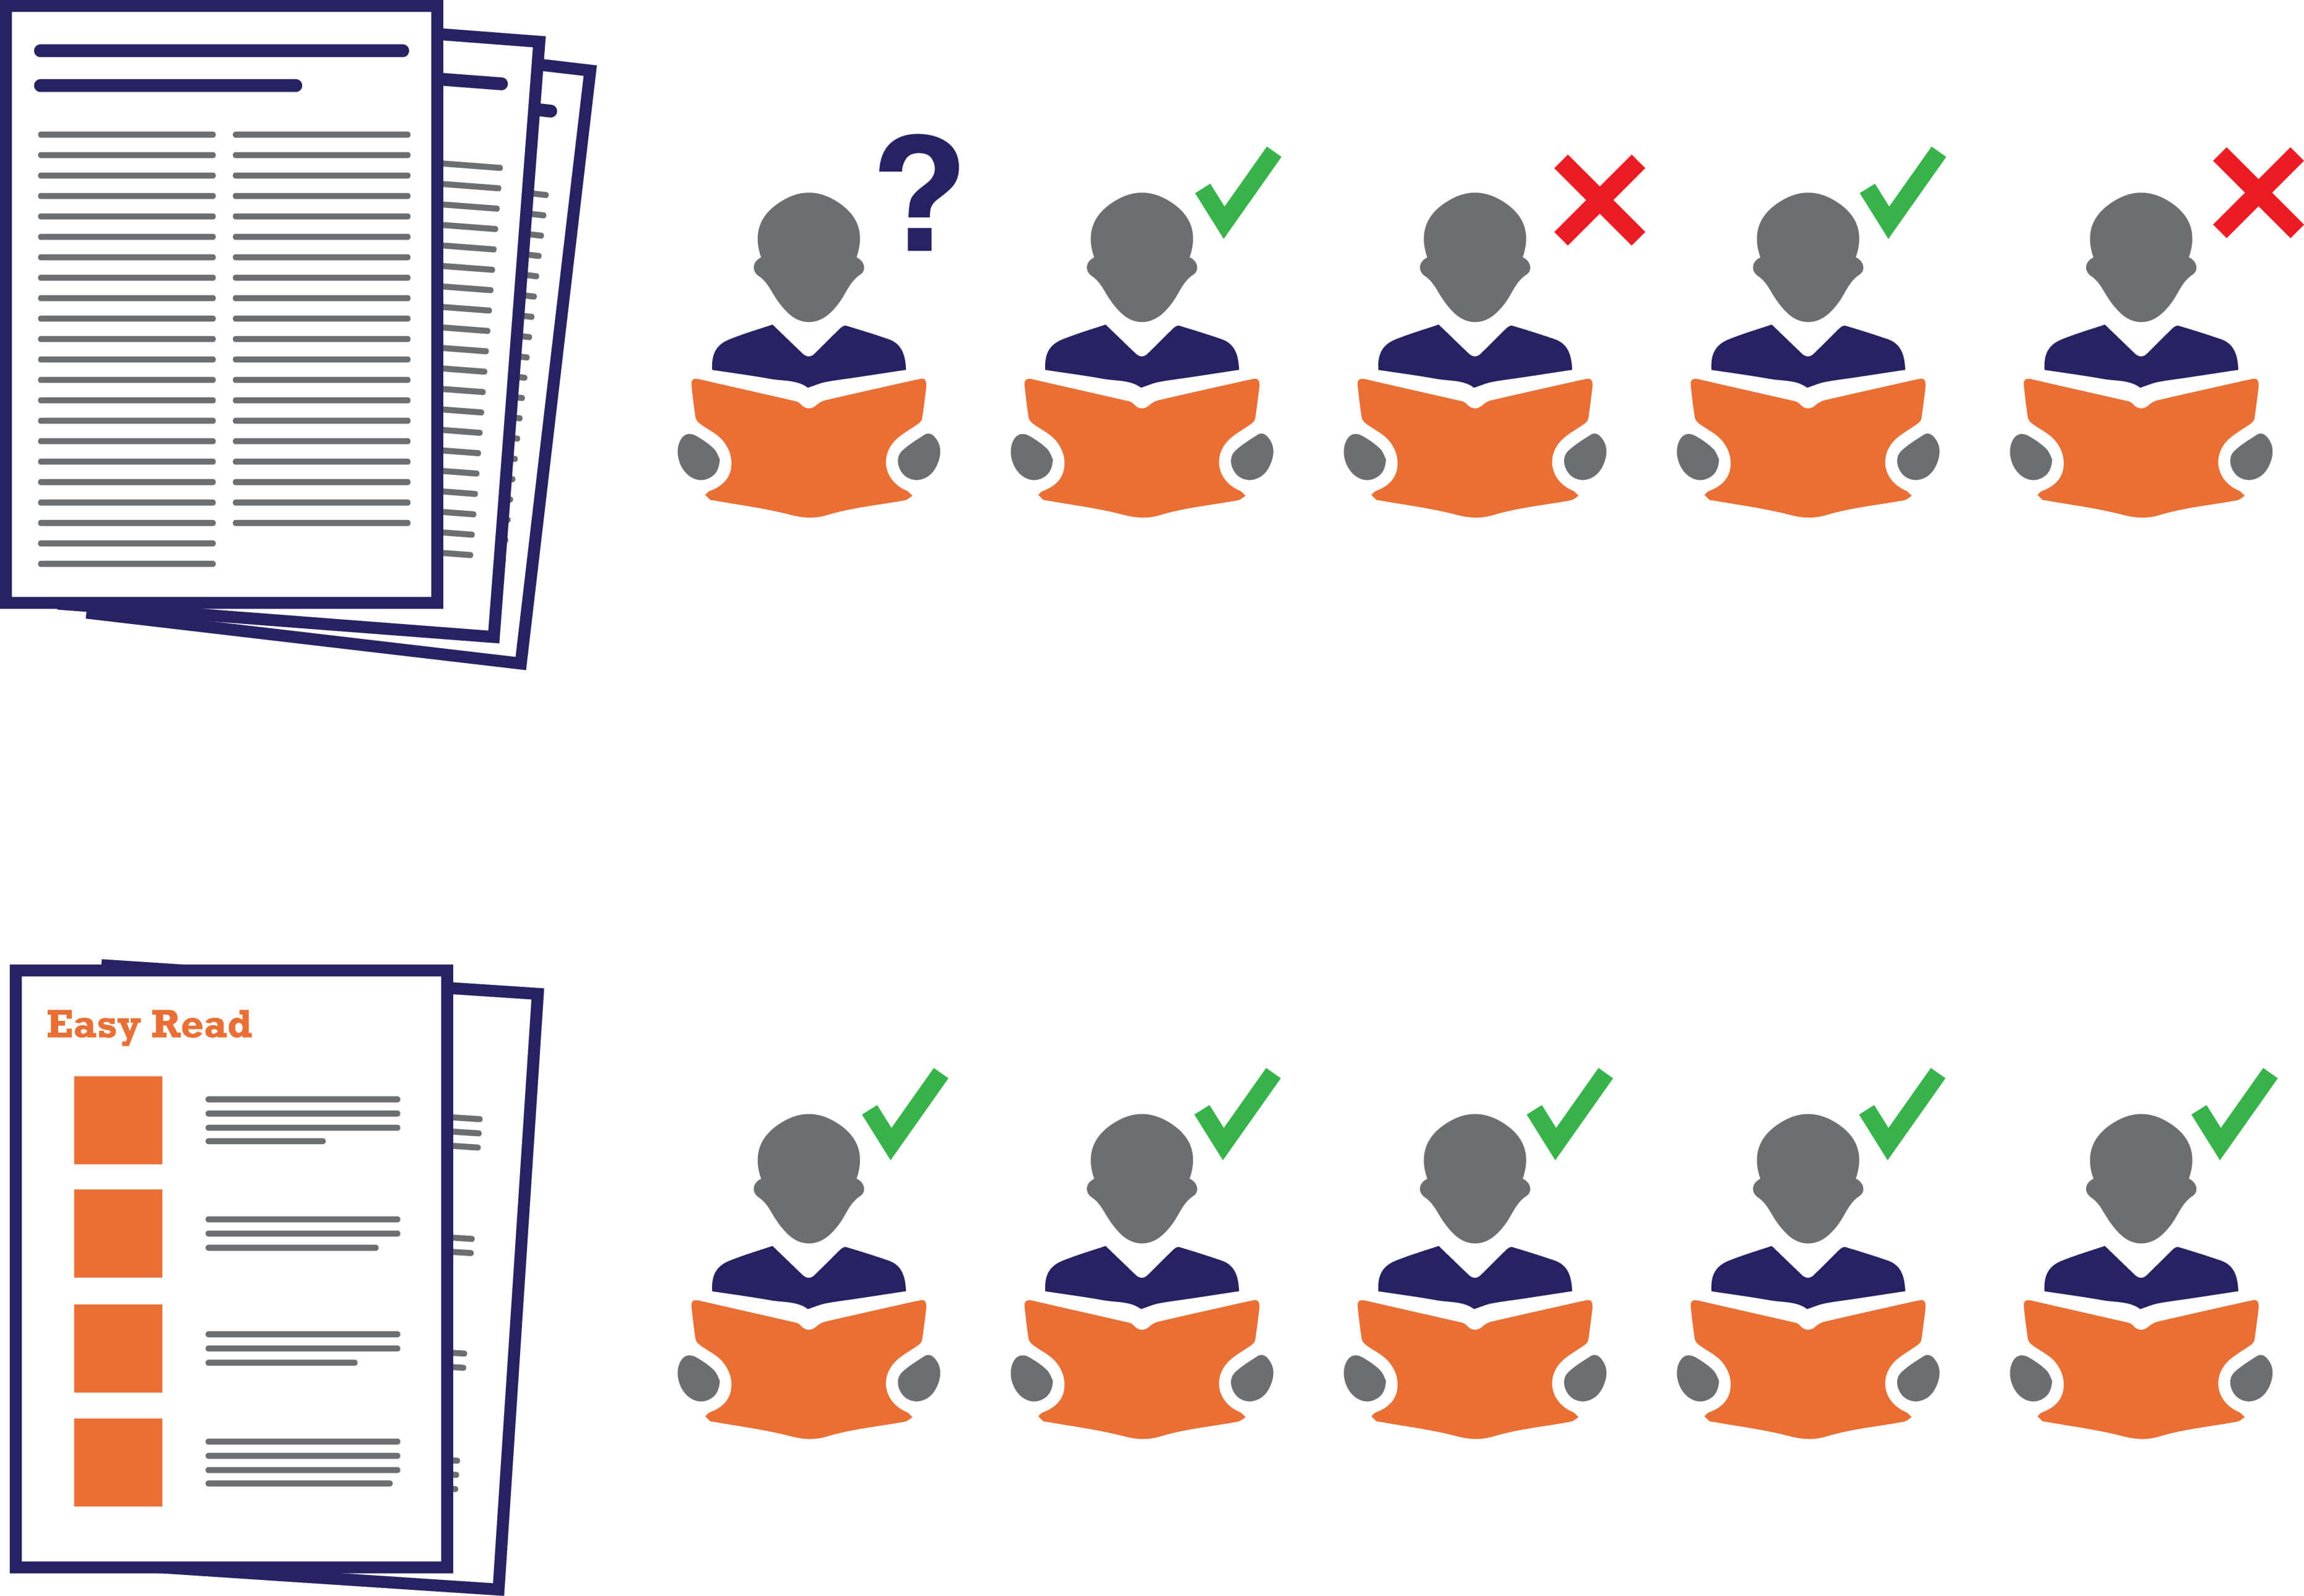 A diagram comparing complicated language to Easy Read. There is a stack of complicated documents with 5 person icons next to it. Out of the 5 people, 2 understand, 2 don't understand and 1 isn't sure. Below, there is an Easy Read document with 5 person icons next to it. All 5 people understand the document.